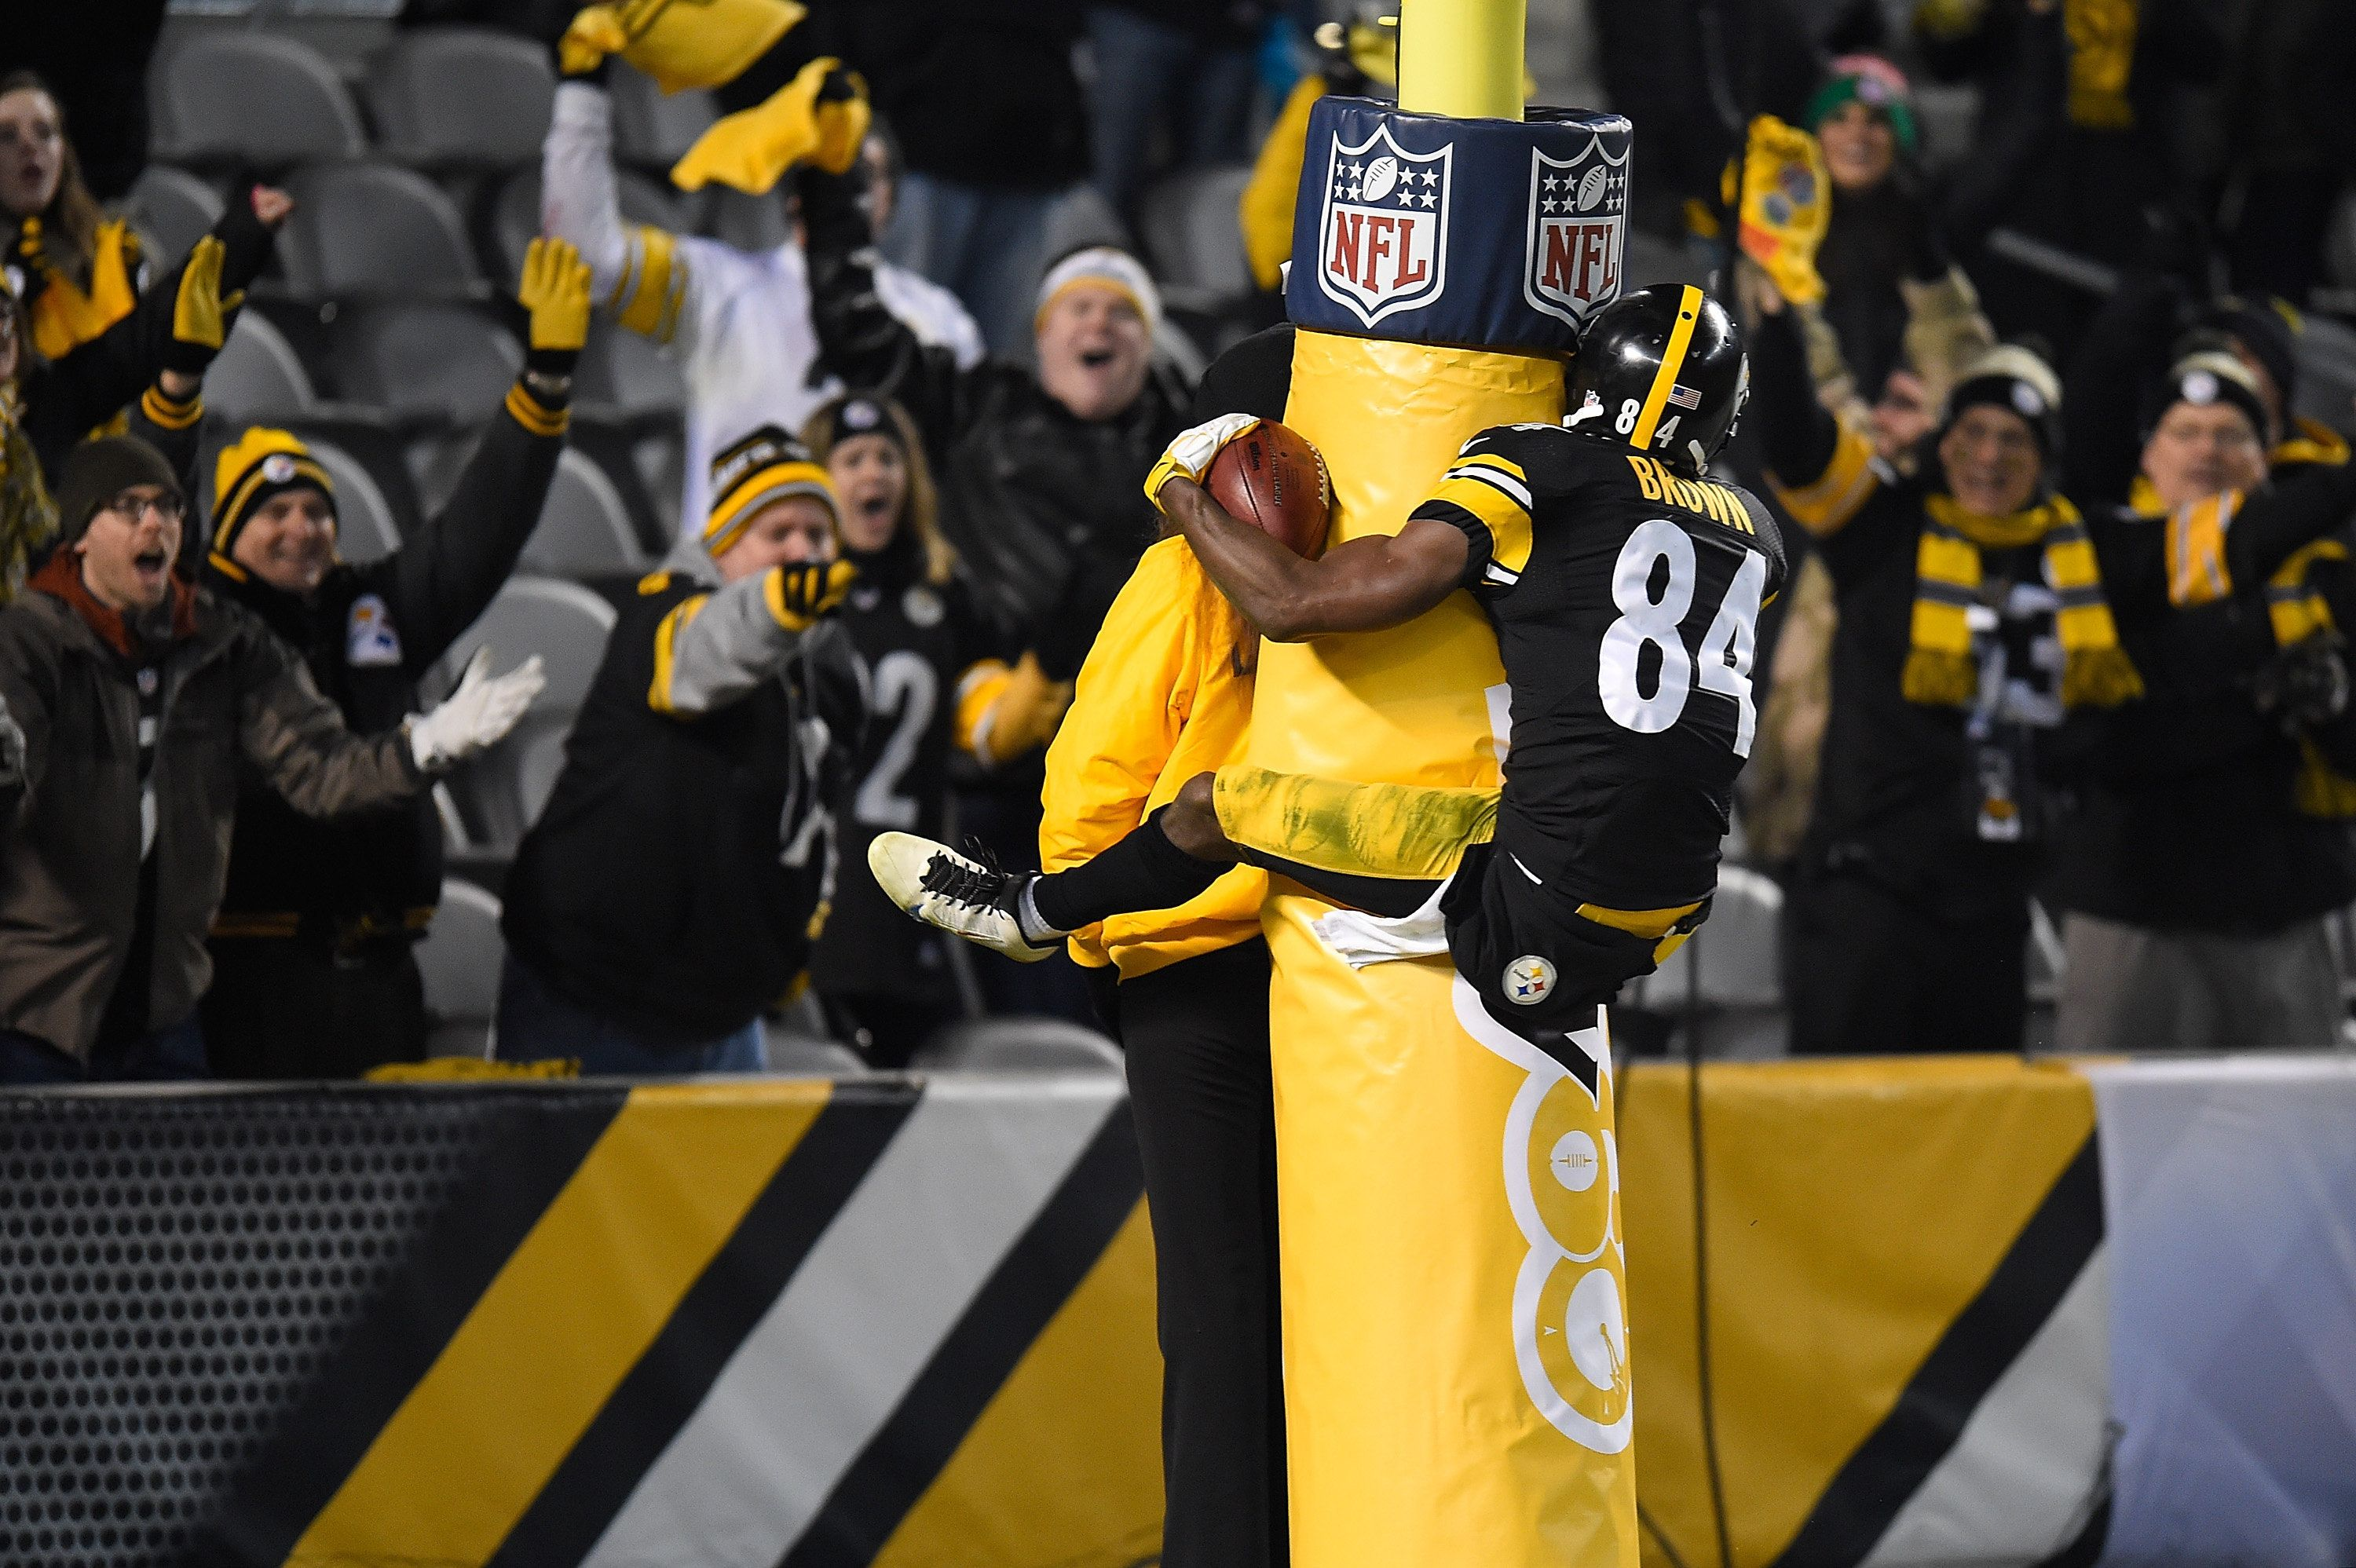 PITTSBURGH, PA - DECEMBER 6:  Antonio Brown #84 of the Pittsburgh Steelers celebrates a fourth quarter touchdown by jumping on the goal post during the game against the Indianapolis Colts at Heinz Field on December 6, 2015 in Pittsburgh, Pennsylvania. (Photo by Joe Sargent/Getty Images)